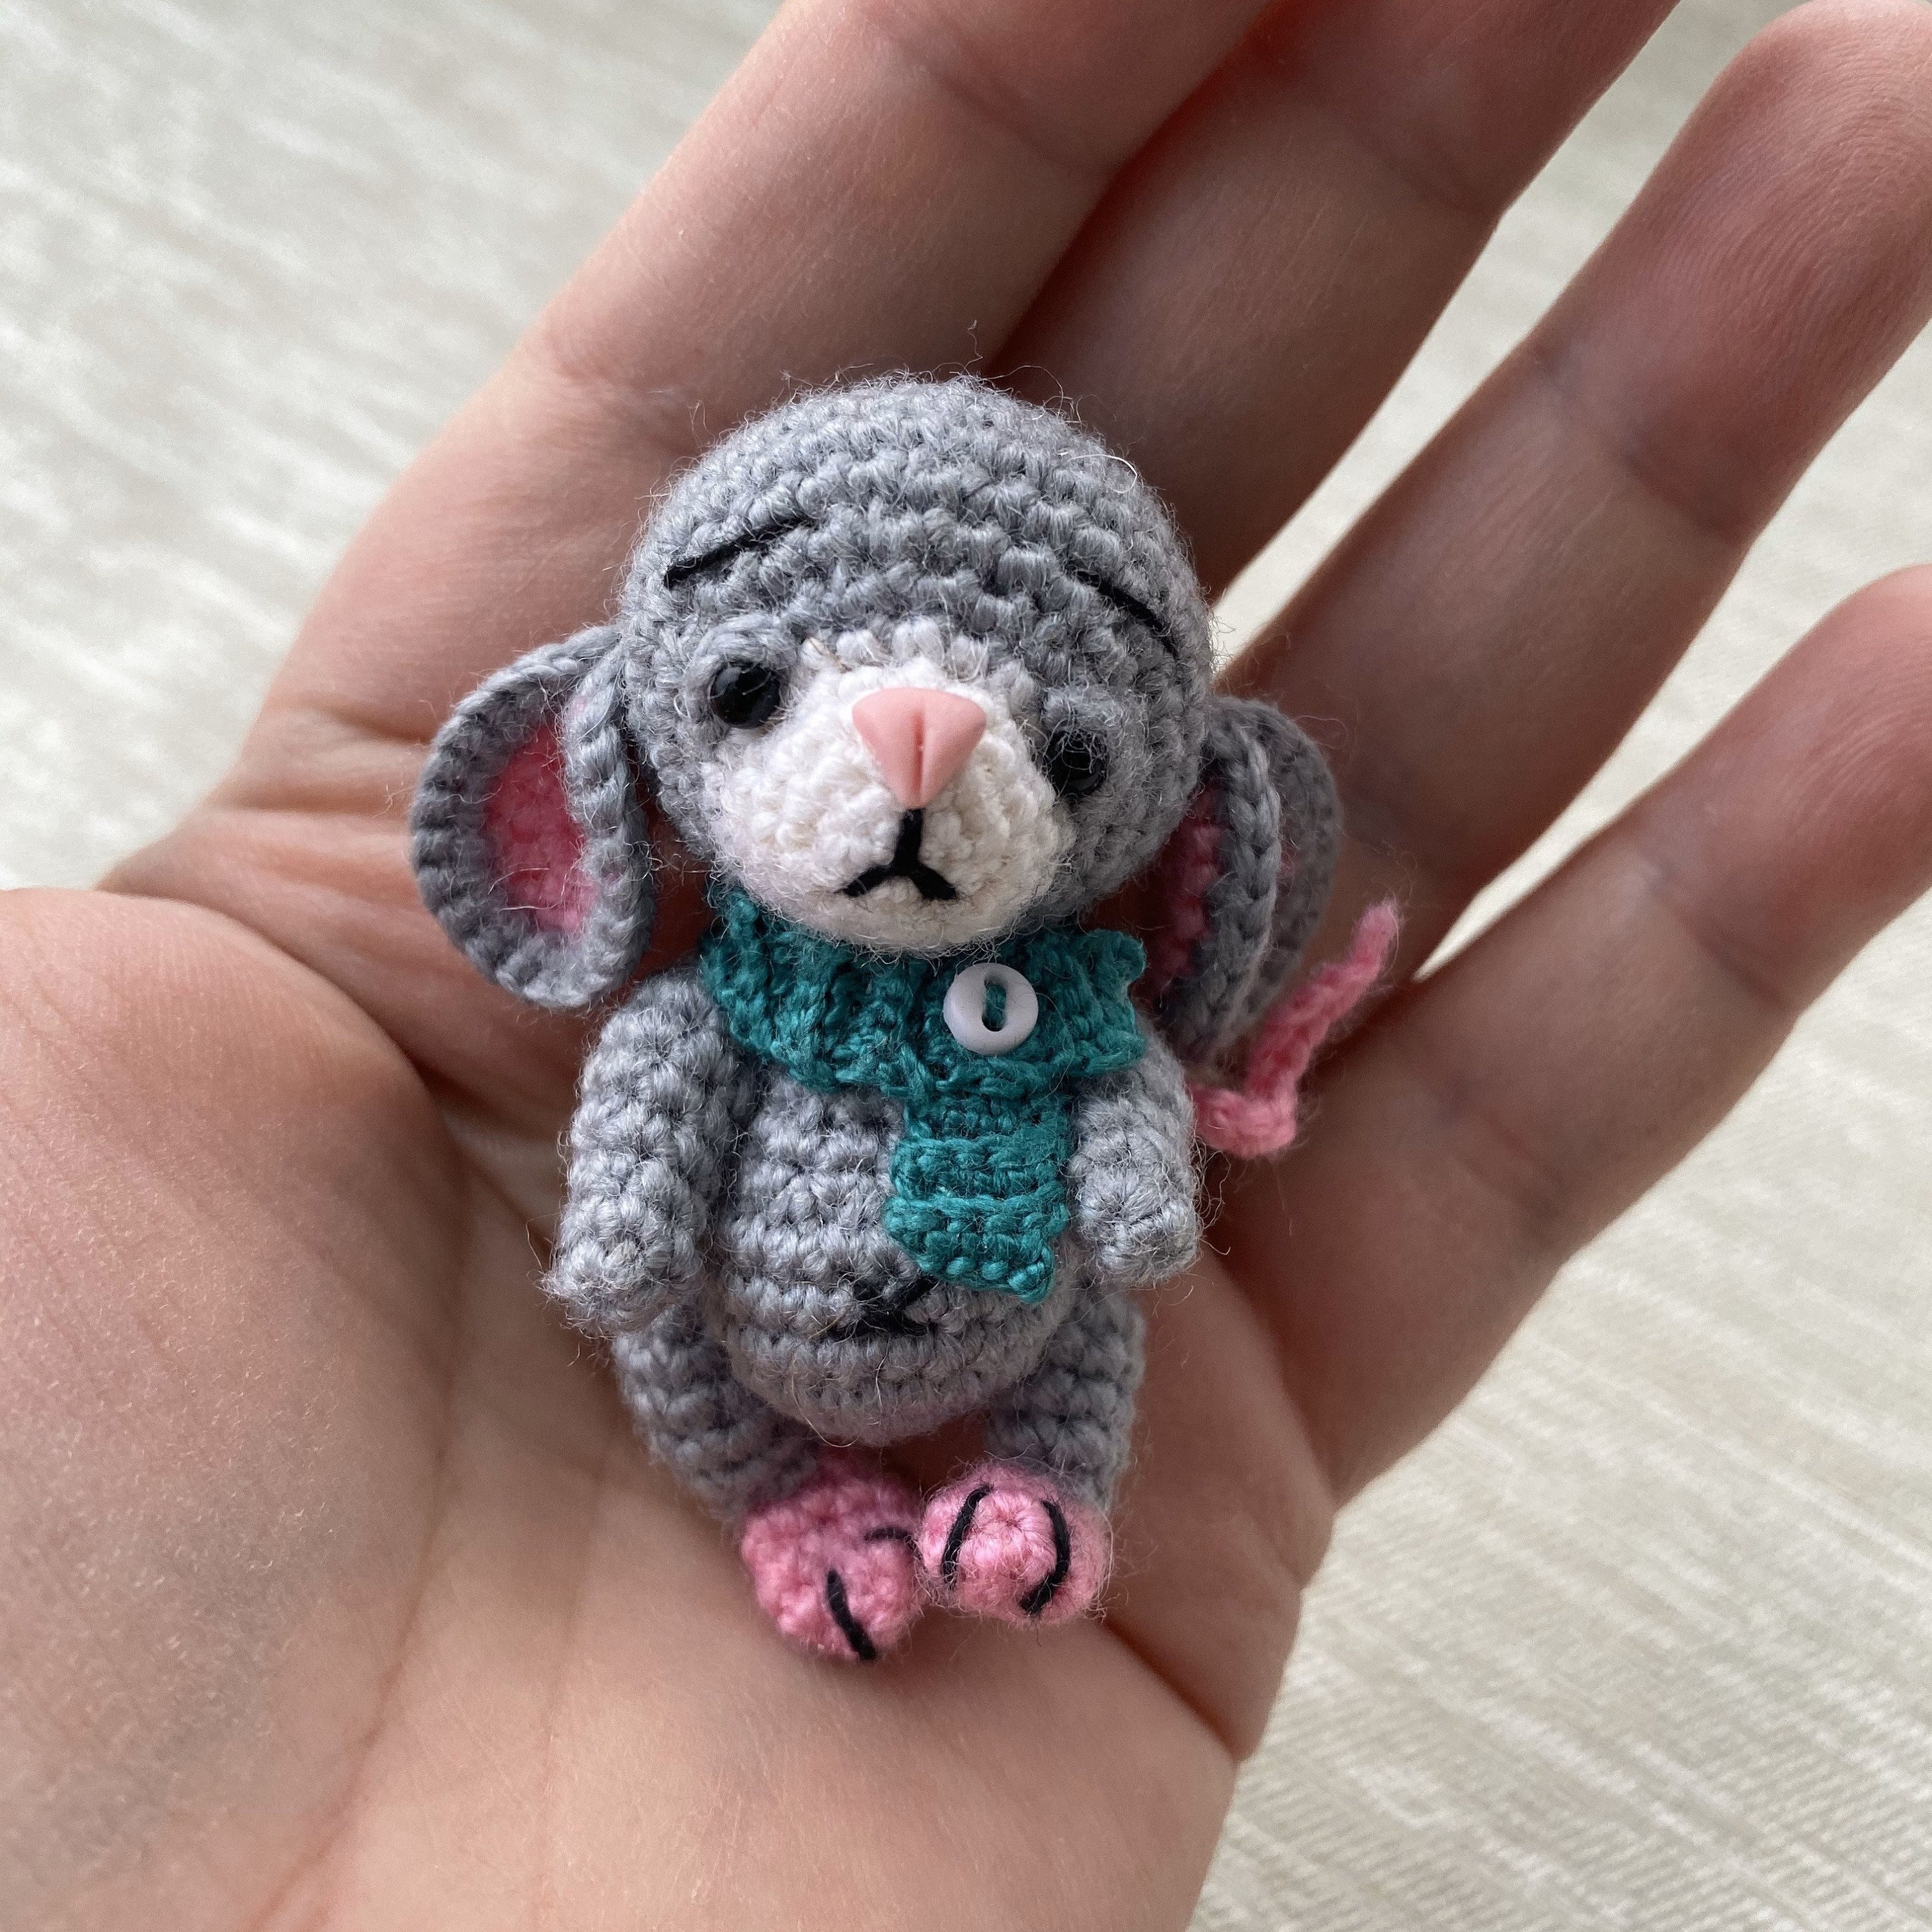 Crochet Tiny Mouse Amigurumi Free Patterns (With images) | Crochet ... | 3000x3000